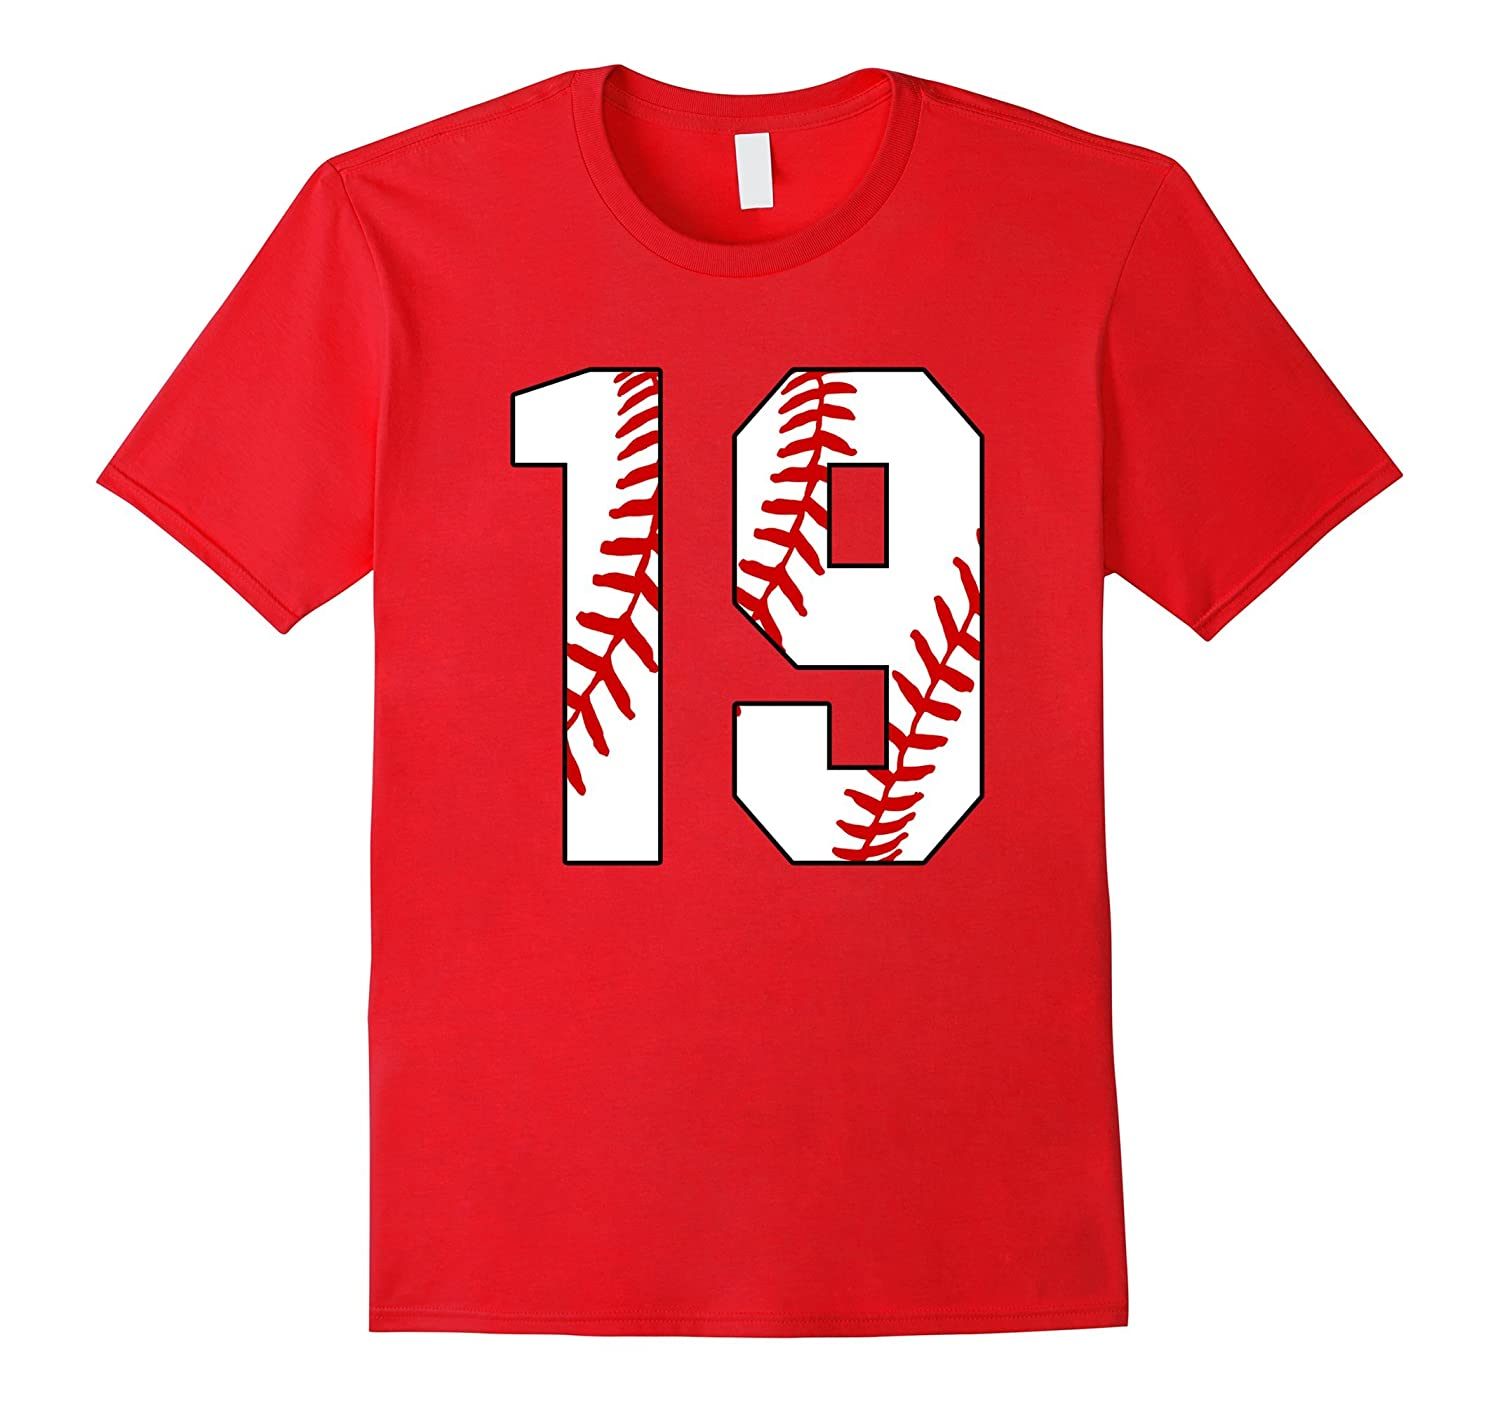 #19 Baseball 19th Birthday Nineteen Baseball Mom T-shirt-TH